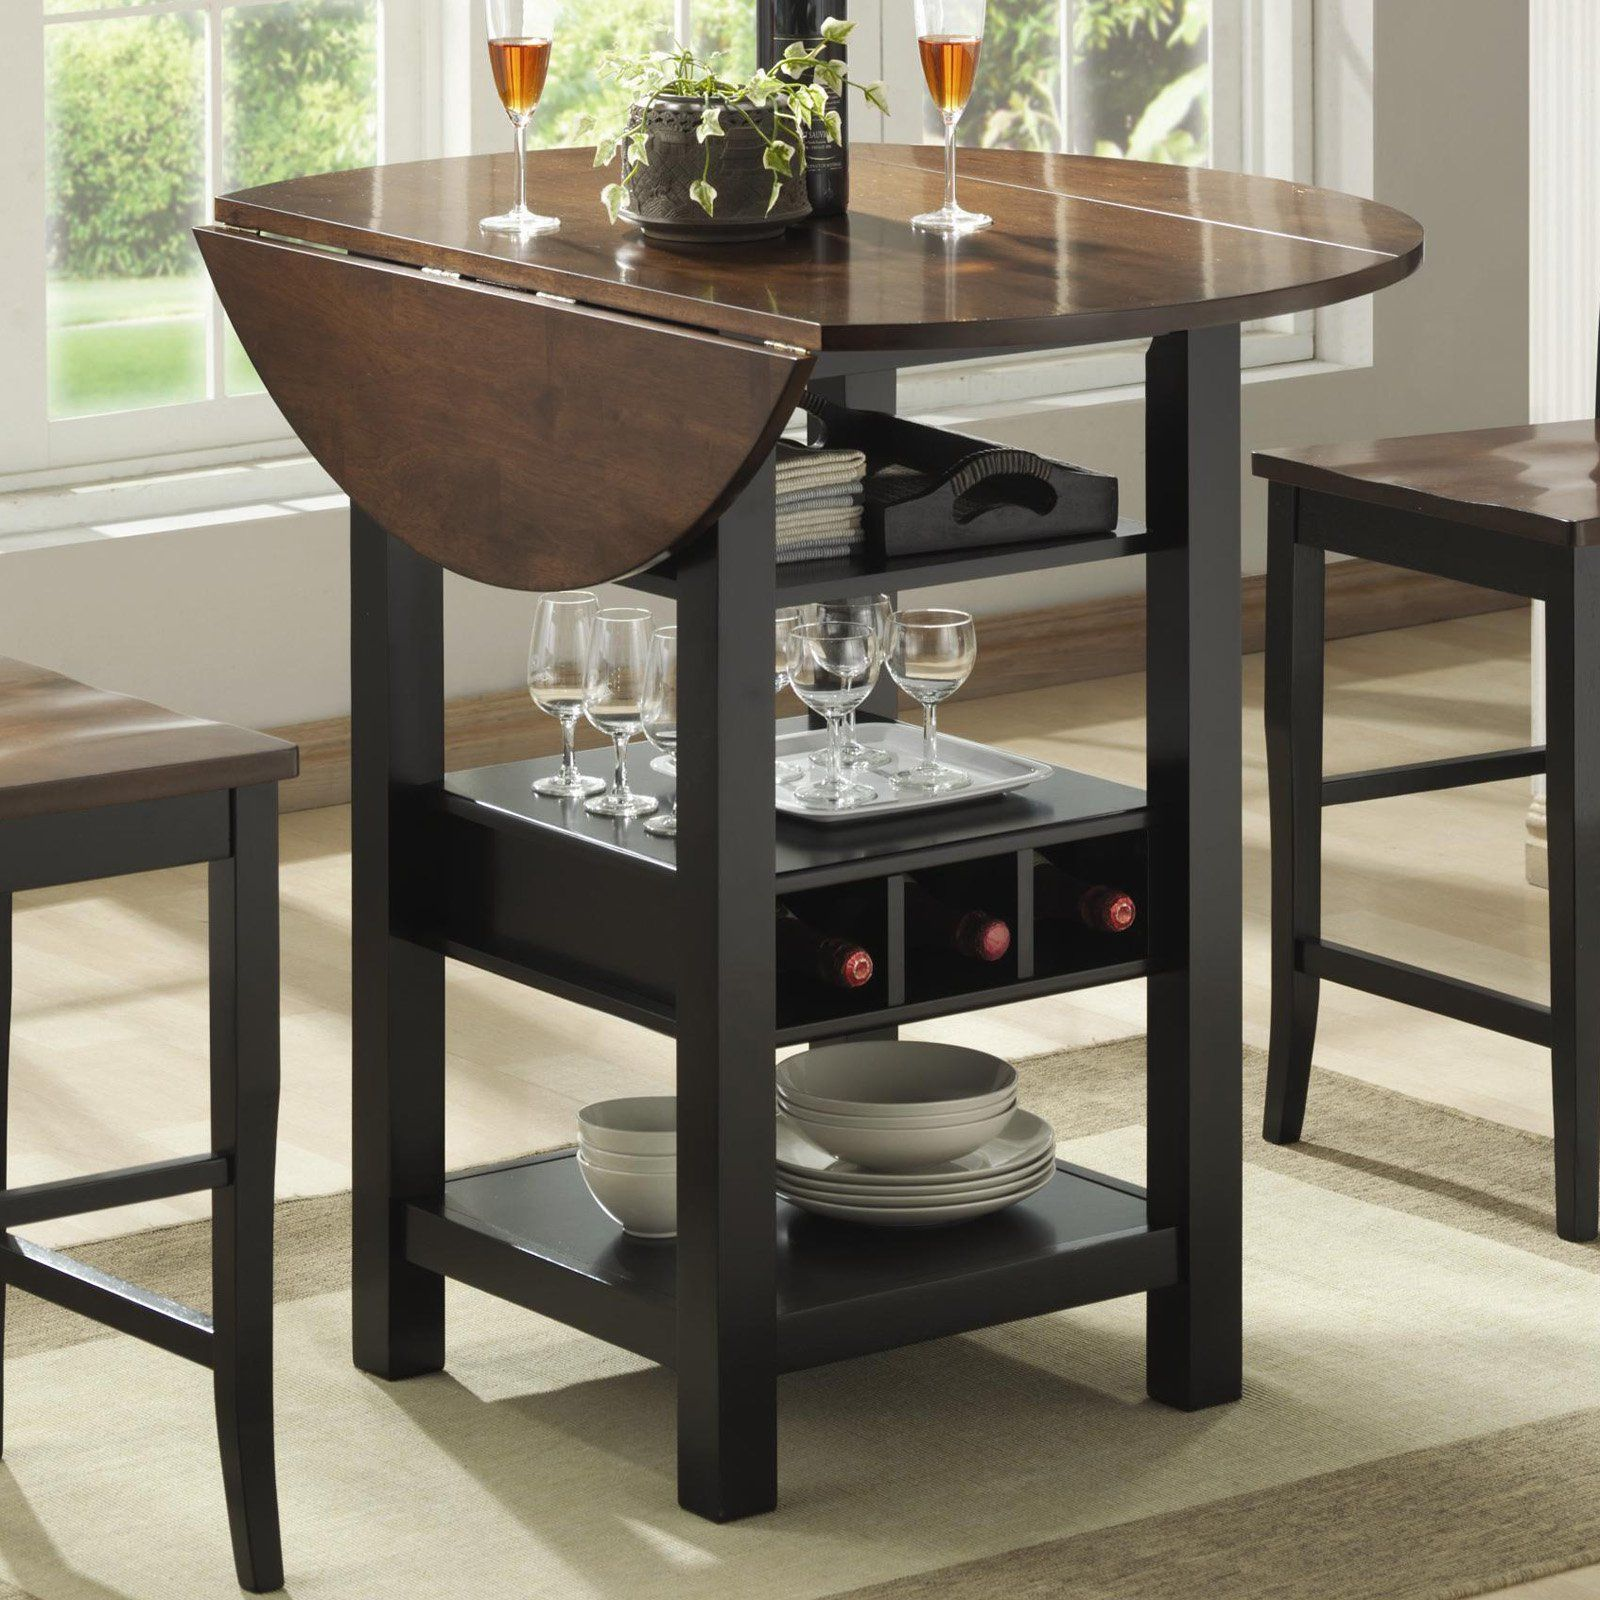 Ridgewood Counter Height Drop Leaf Dining Table With Storage  Black   If  Big Things Come In Small Packages, The Ridgewood Counter Height Drop Leaf  Dining ...